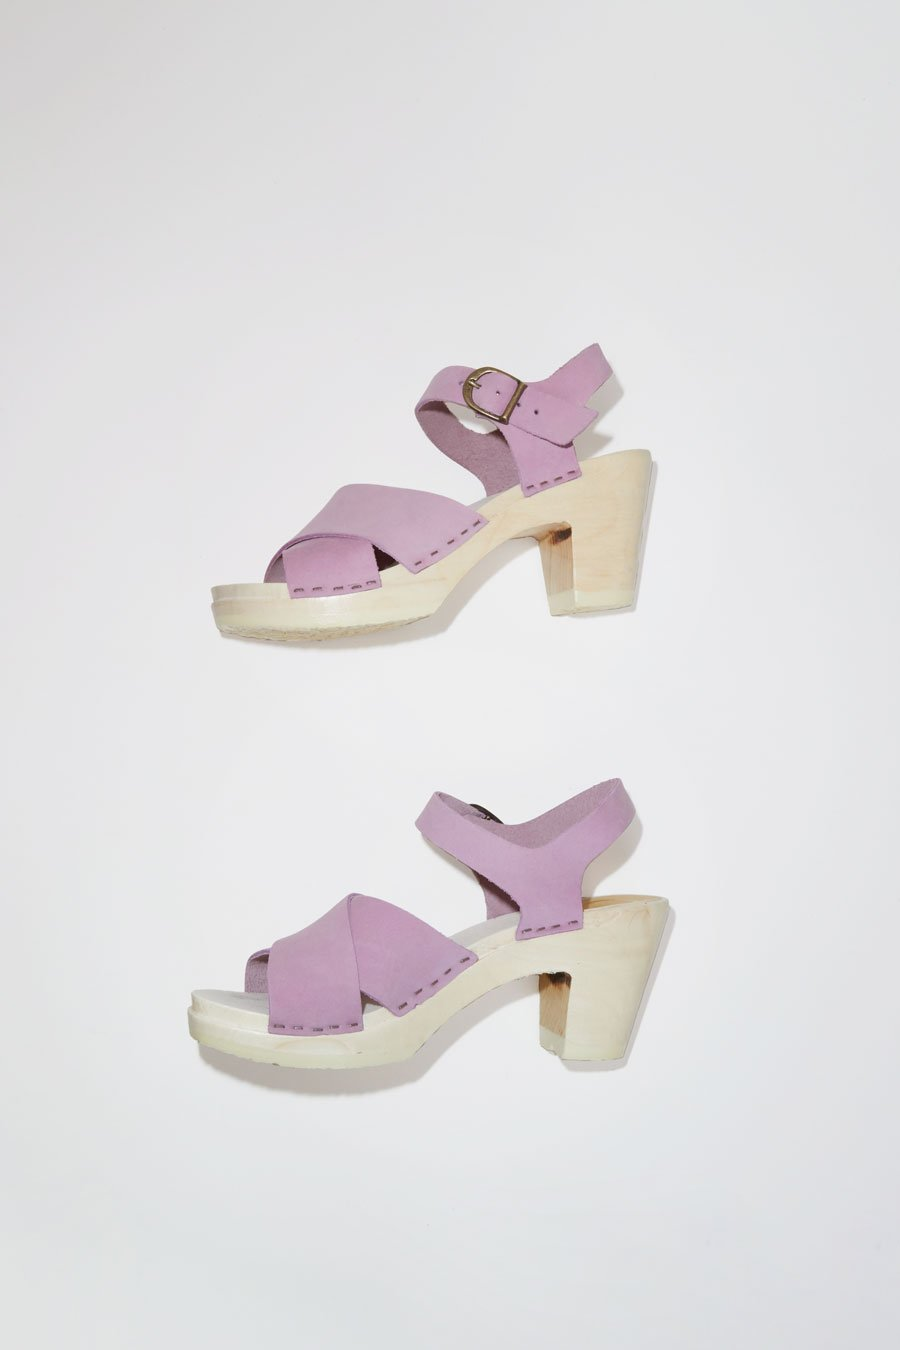 No. 6 Coco Cross Front Sandal on High Heel in Violet